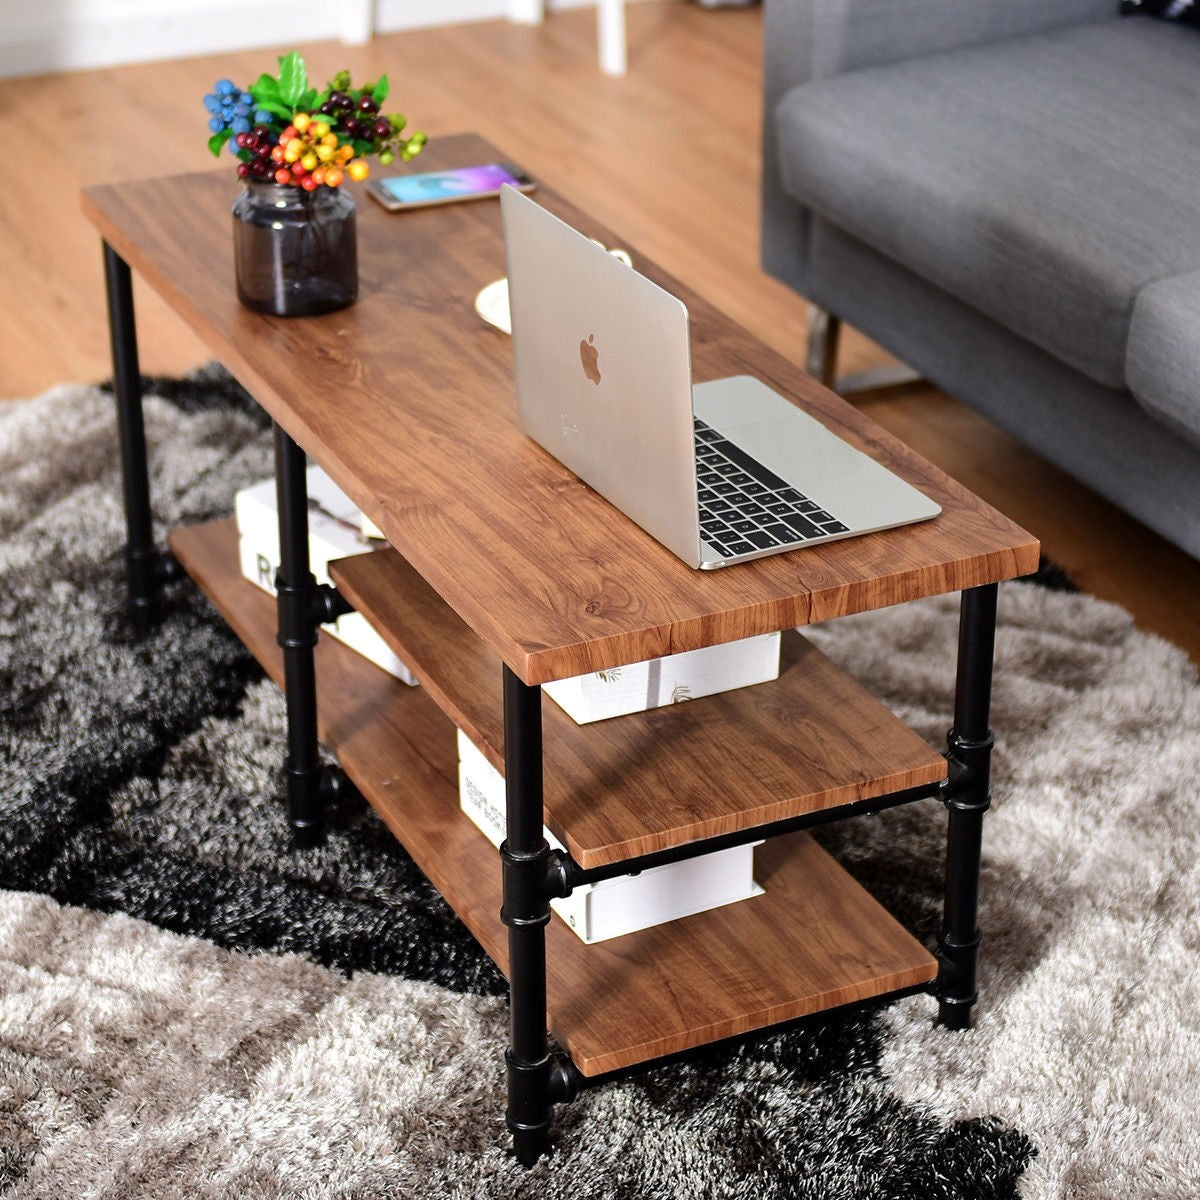 - 3-Tier Metal Frame Coffee Table With Storage Shelves – EK CHIC HOME